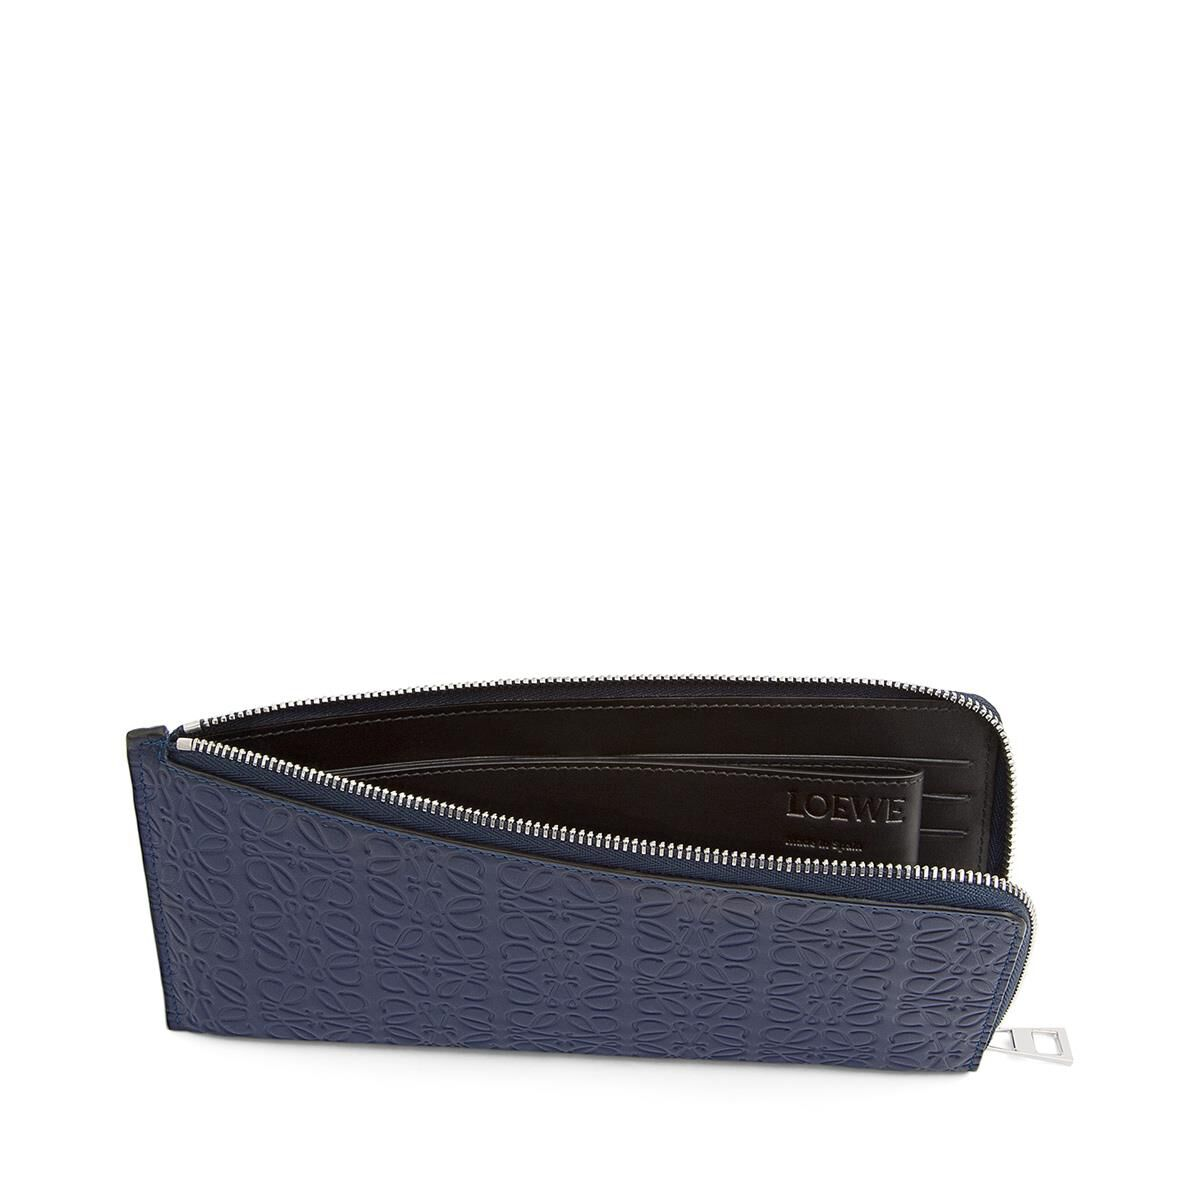 LOEWE Flat Zip Around Marine all